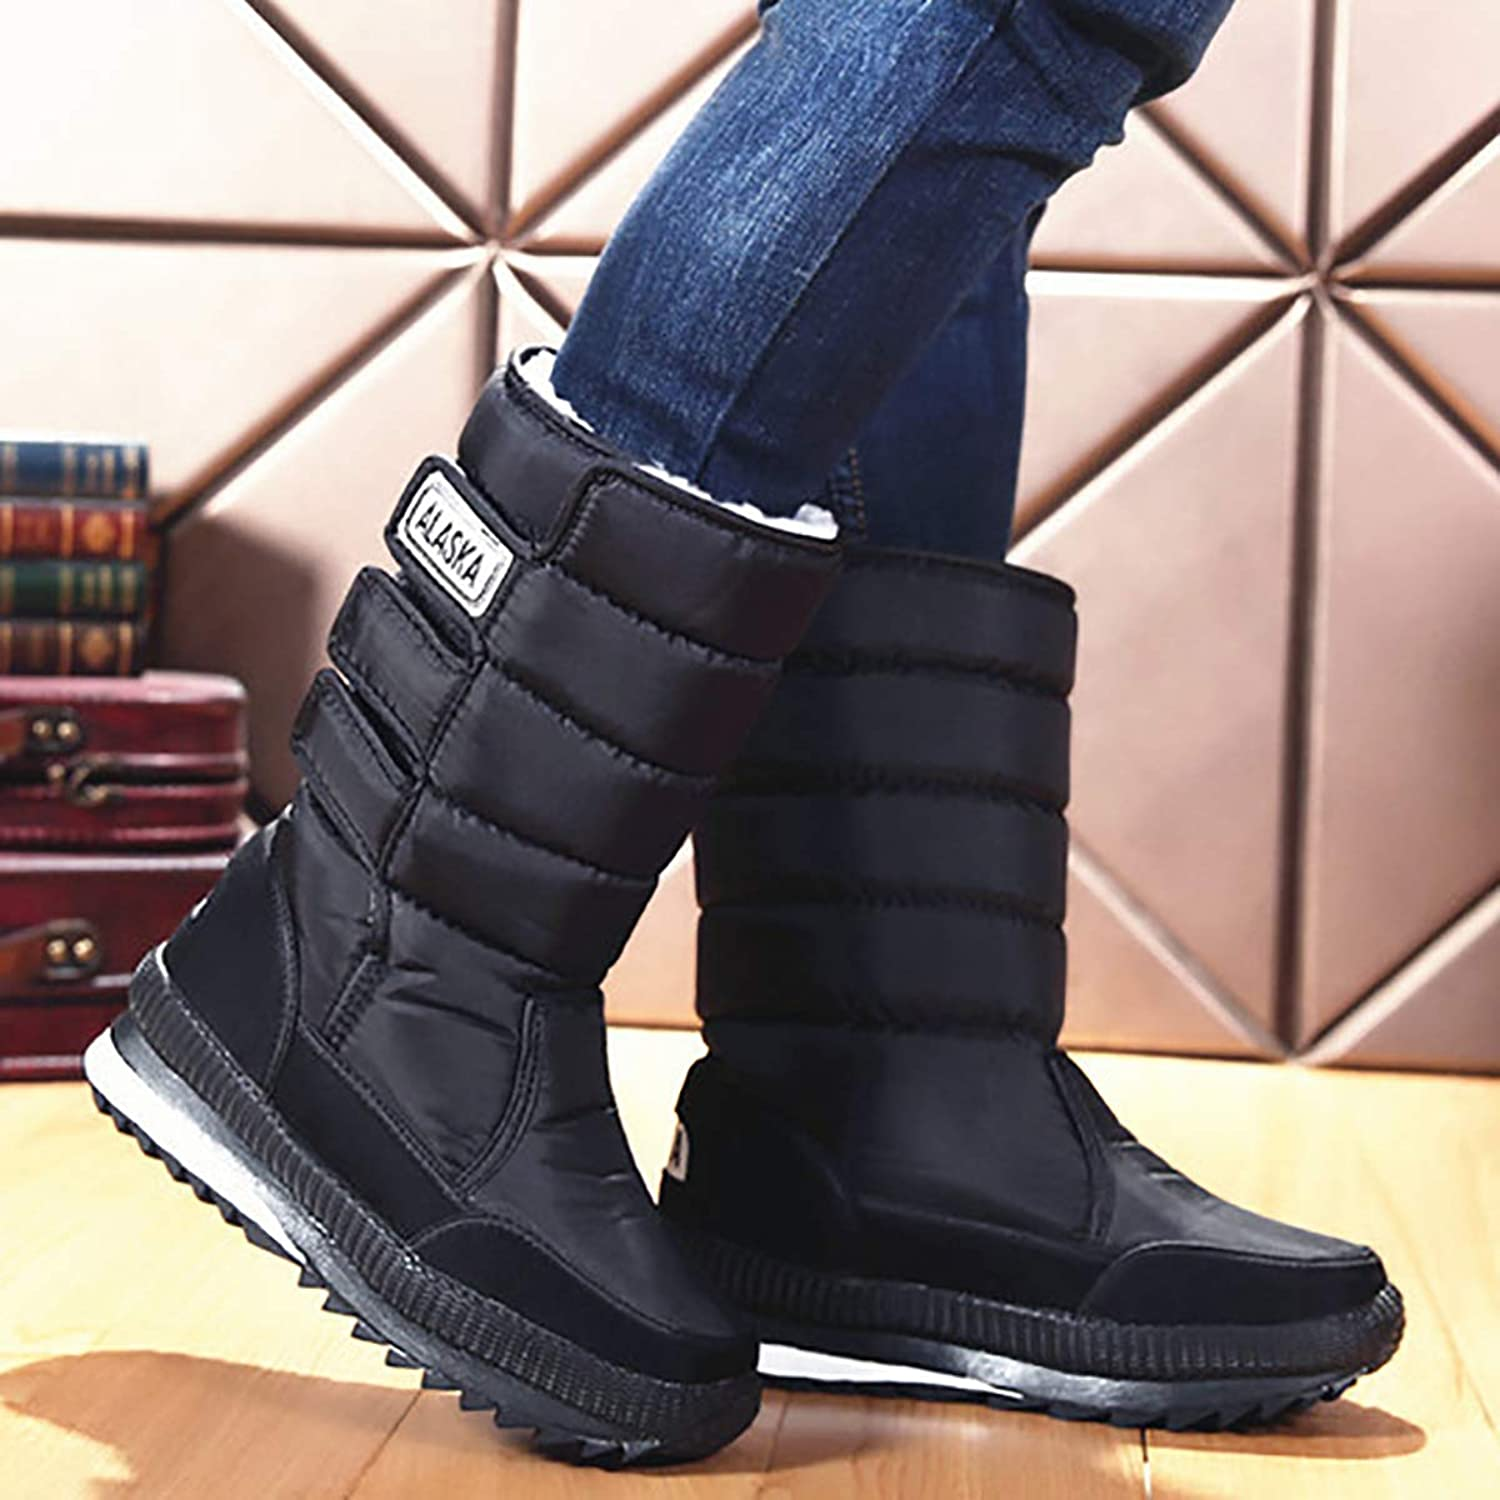 Snow Boots Couple Men and Women with Winter shoes, Warm Large Size Snow shoes, Black Warm Women's Tube,Black,47